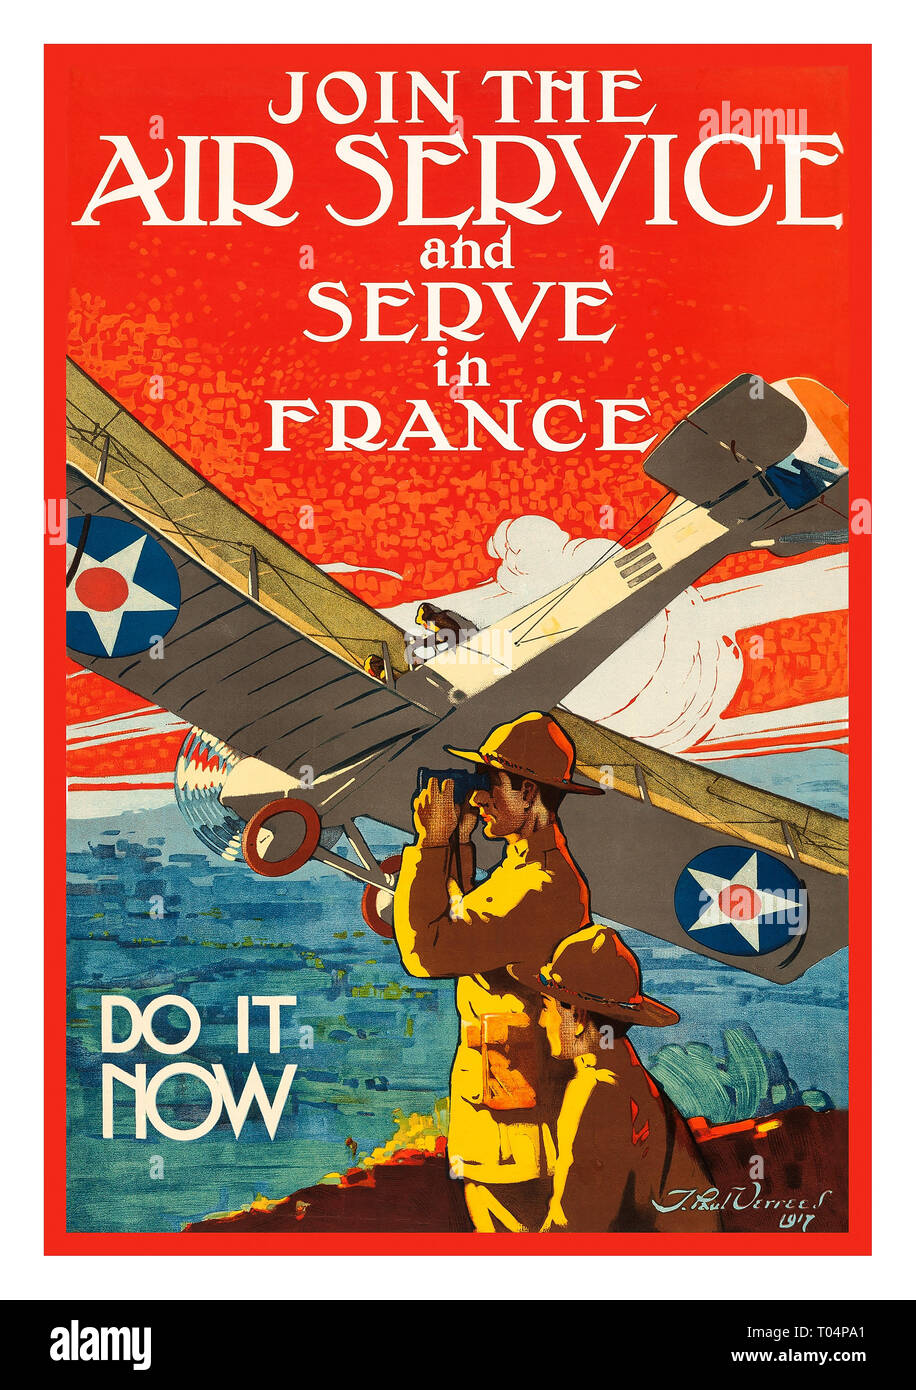 WWI JOIN THE AIR SERVICE AND SERVE IN FRANCE by Verrees 1917 At the start of the Great War, the airplane was only ten years old, and the U.S. military ranked 16th in the world, just behind Portugal. By July of 1917, General John J. Pershing requested a force of one million men. To appeal to potential recruits, a propaganda campaign was crafted by the Committee on Public Information that included recruiting posters by some of America's top illustrators. Themes of honour, patriotism, adventure, education, and heroism themed these recruitment call-to-action posters. Stock Photo